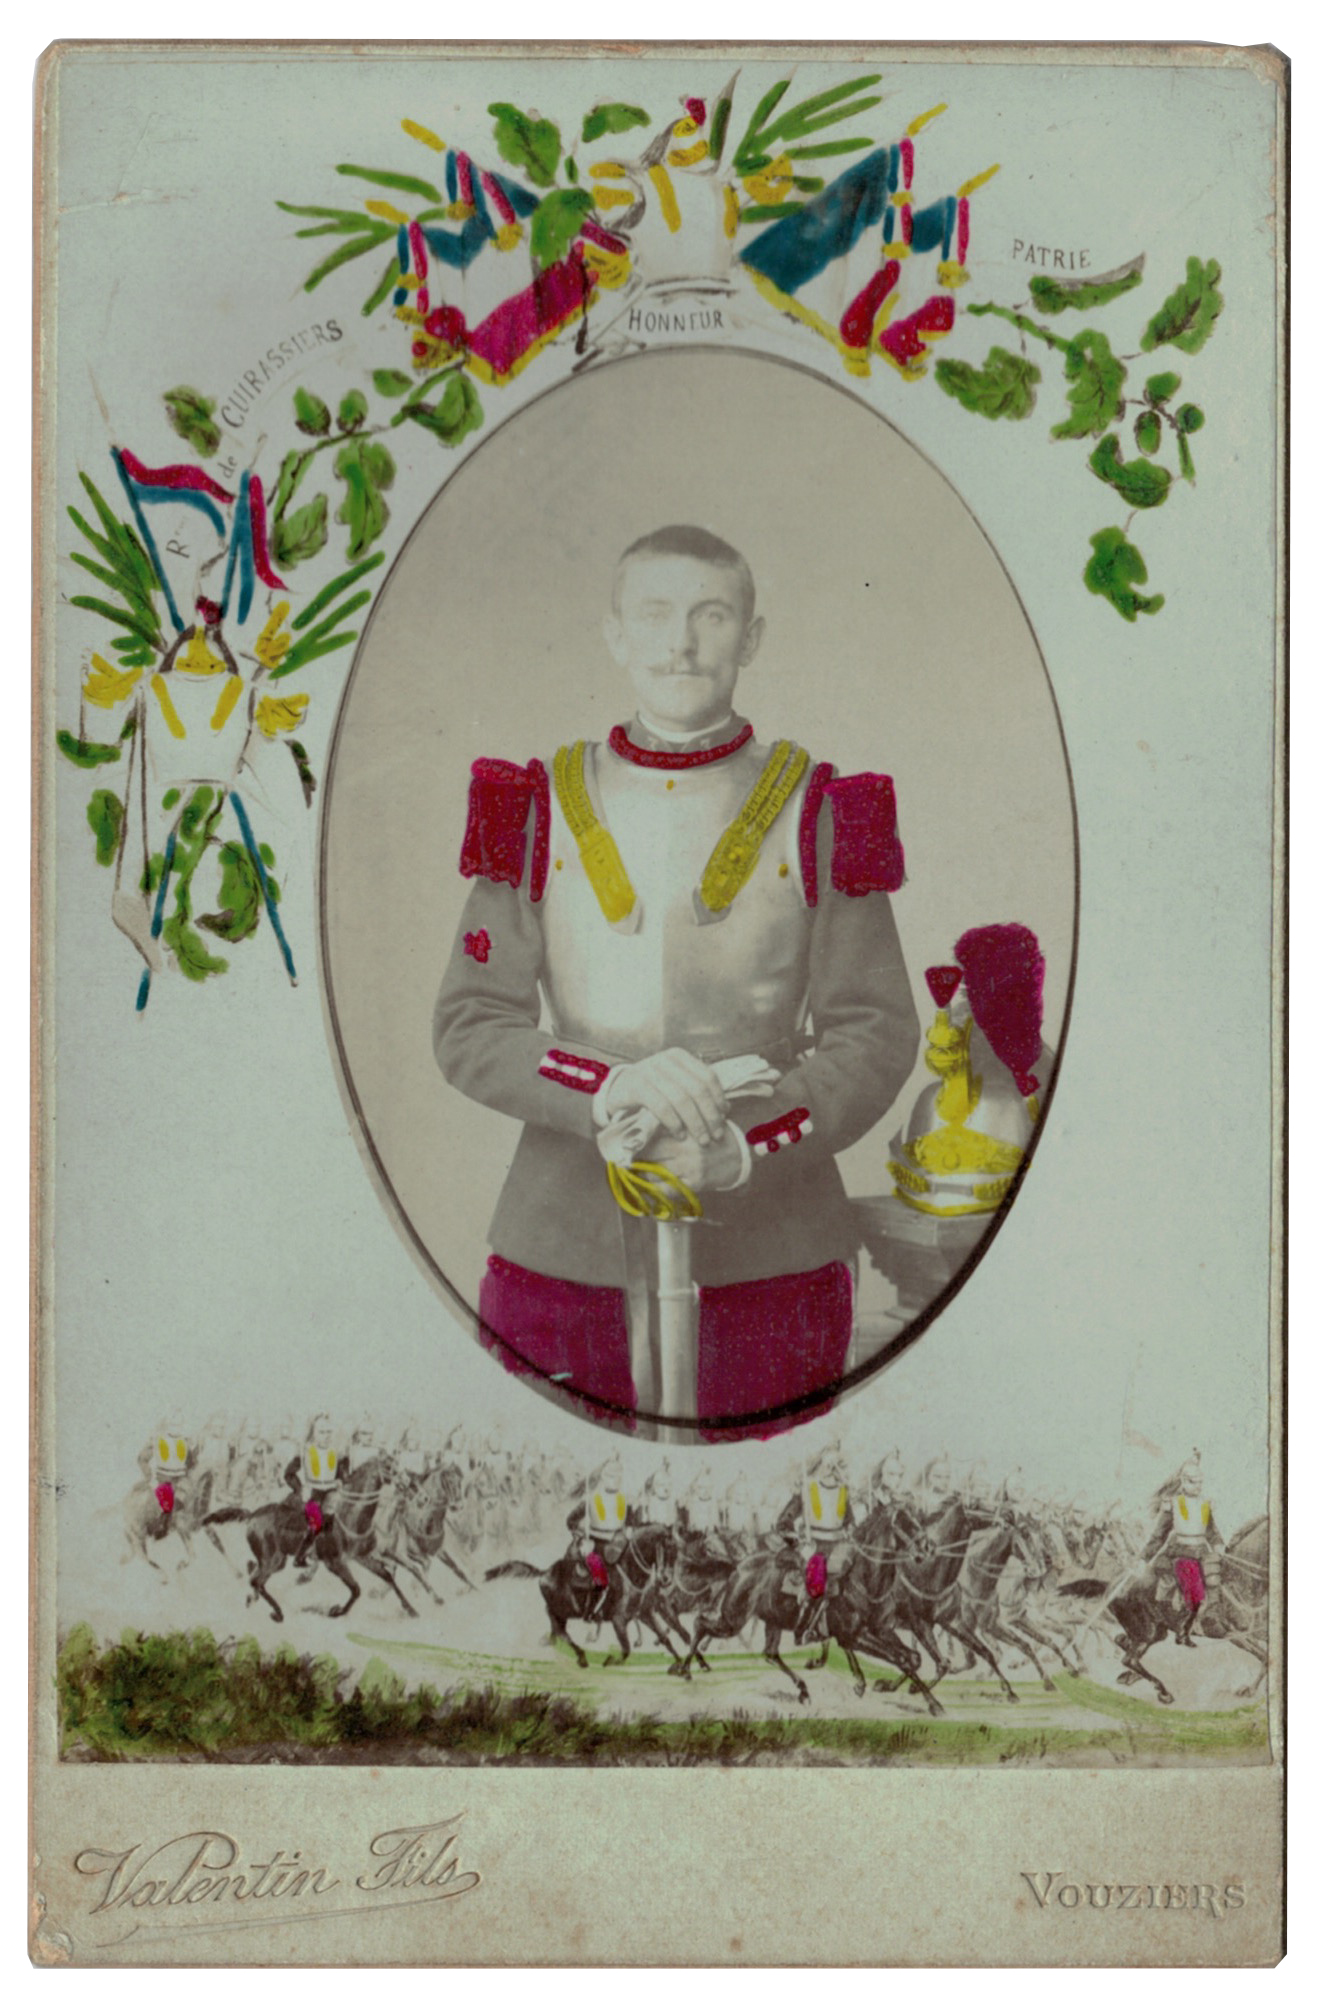 Carte CDV photo - Grand format - Soldat Cuirassier 3 République - Vouzier - 3eme Cuirassier